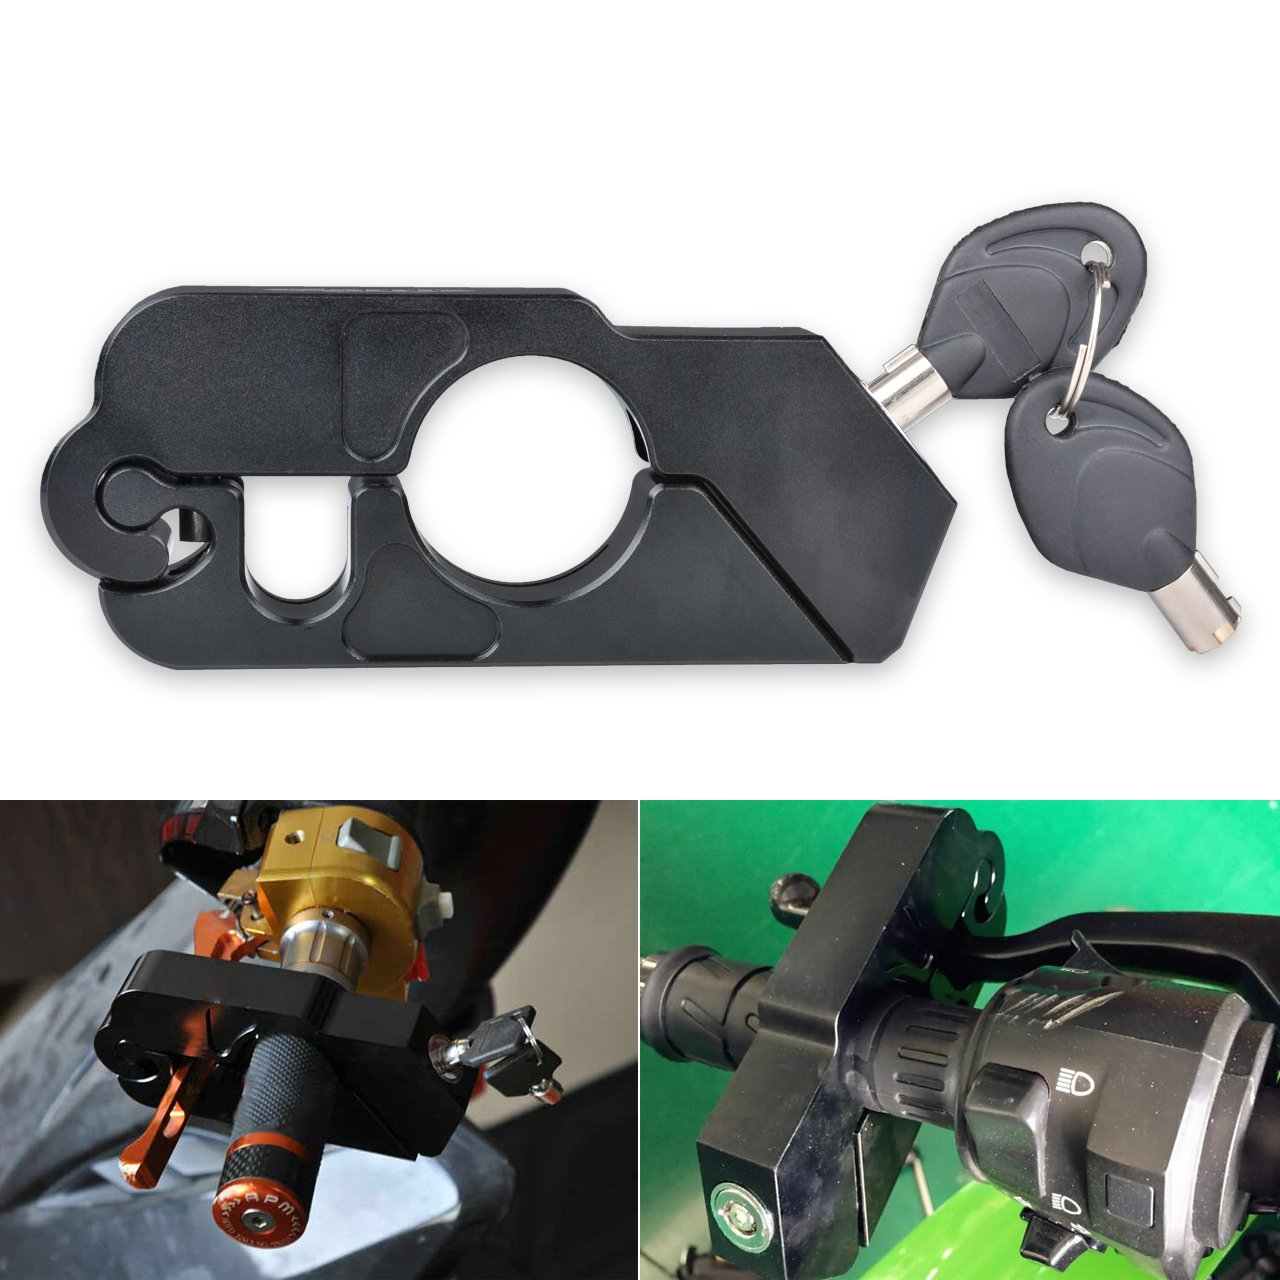 KaTur Motorcycle Grip Lock - Universal Aluminum CNC Motorcycle Handle Throttle Grip Security Lock with 2 Keys to Secure a Bike, Scooter, Moped or ATV in Under 5 Seconds -Black